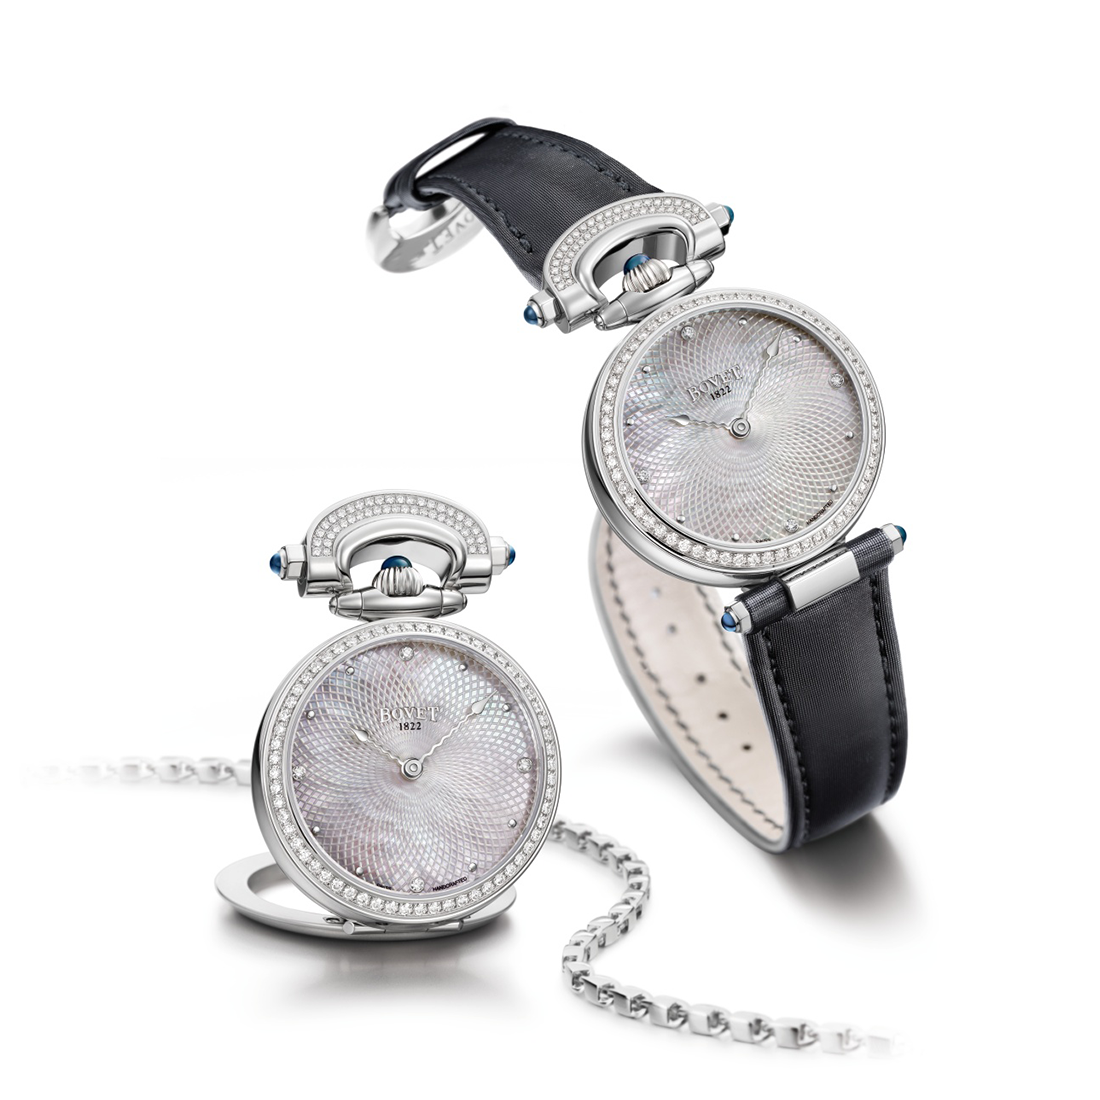 Bovet Amadeo Fleurier Miss Audrey White Pearl 36mm